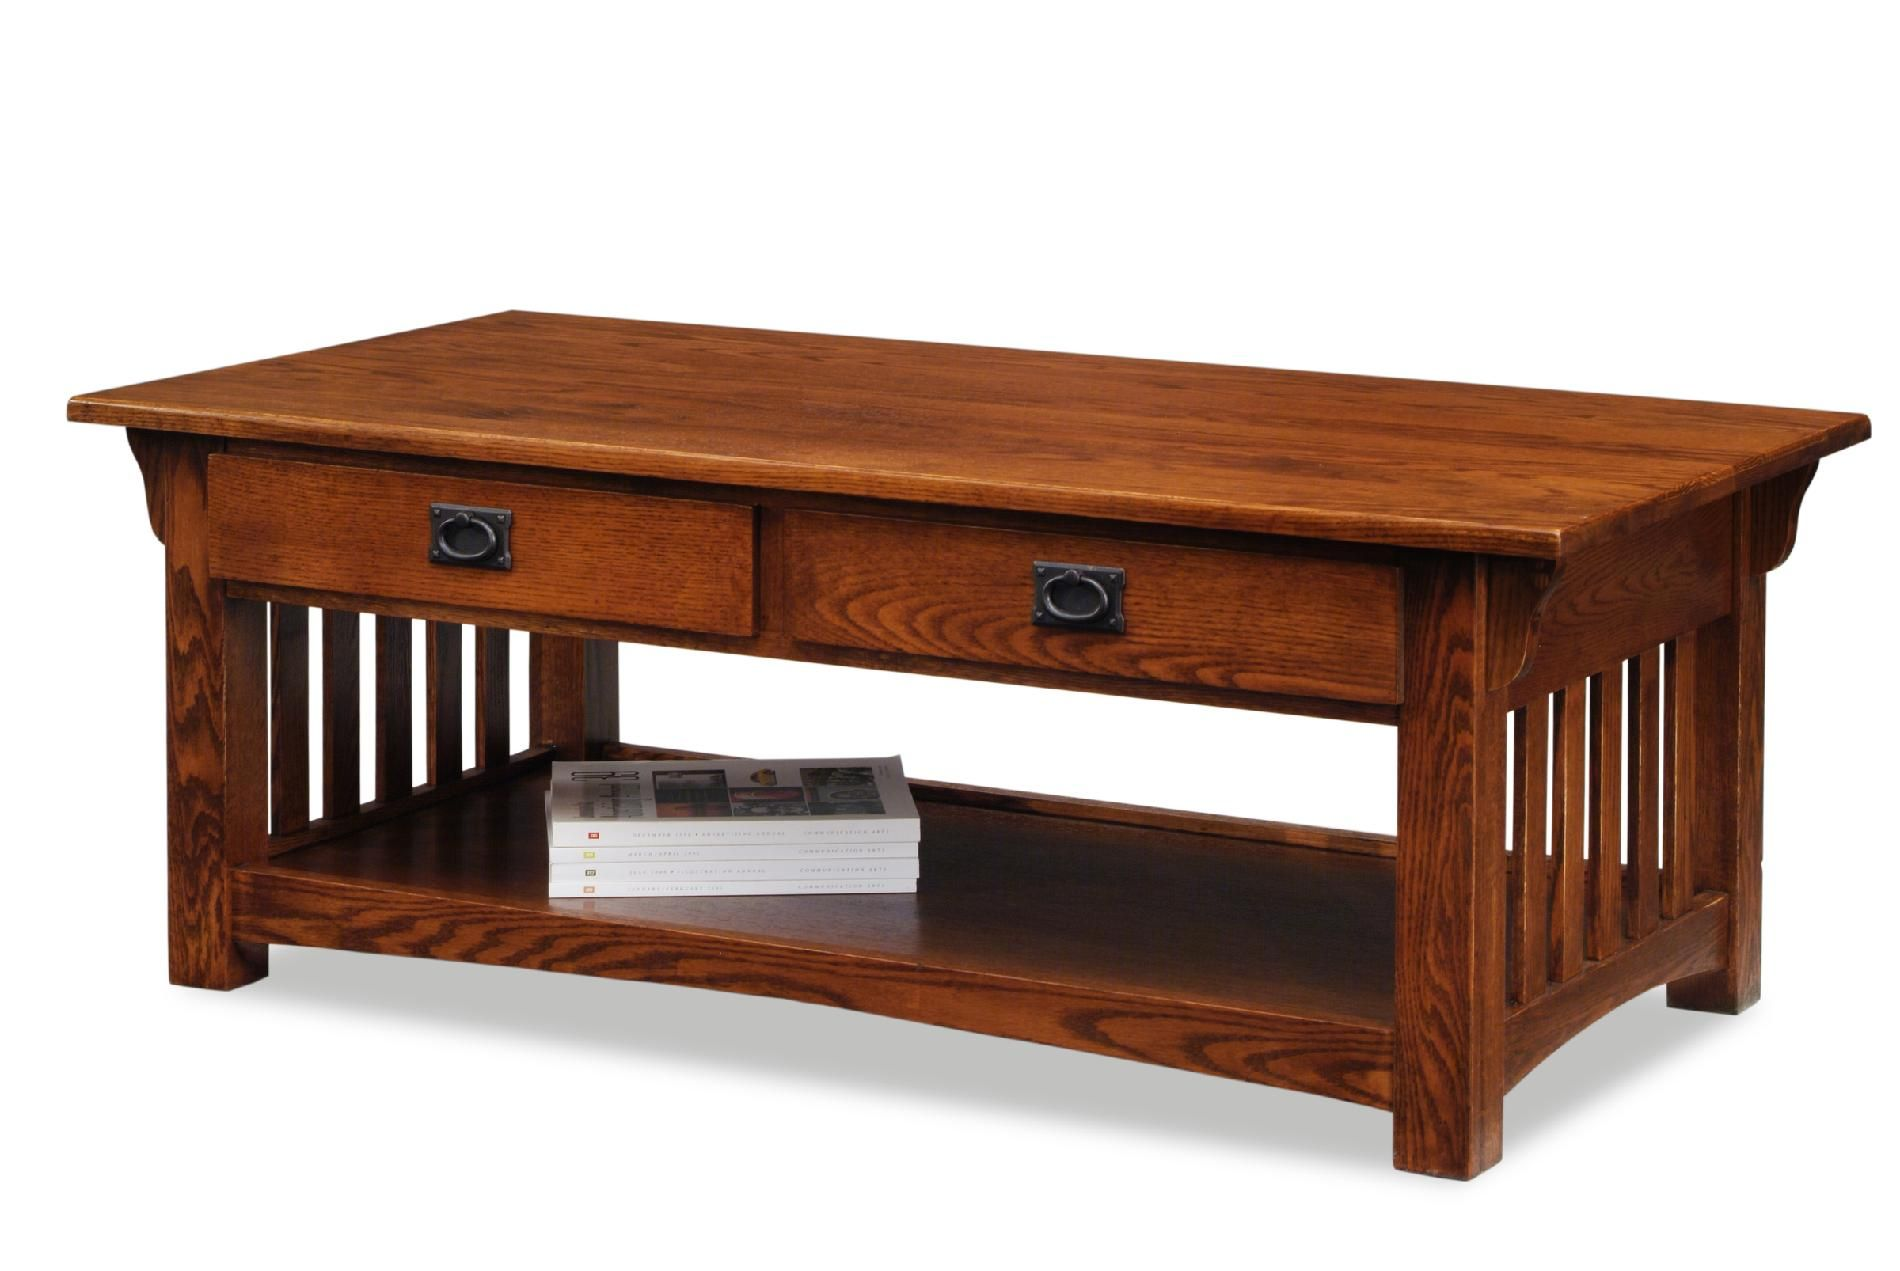 Leick Mission Coffee Table With Drawers And Shelf Medium Oak - Oak coffee table with drawers and shelf